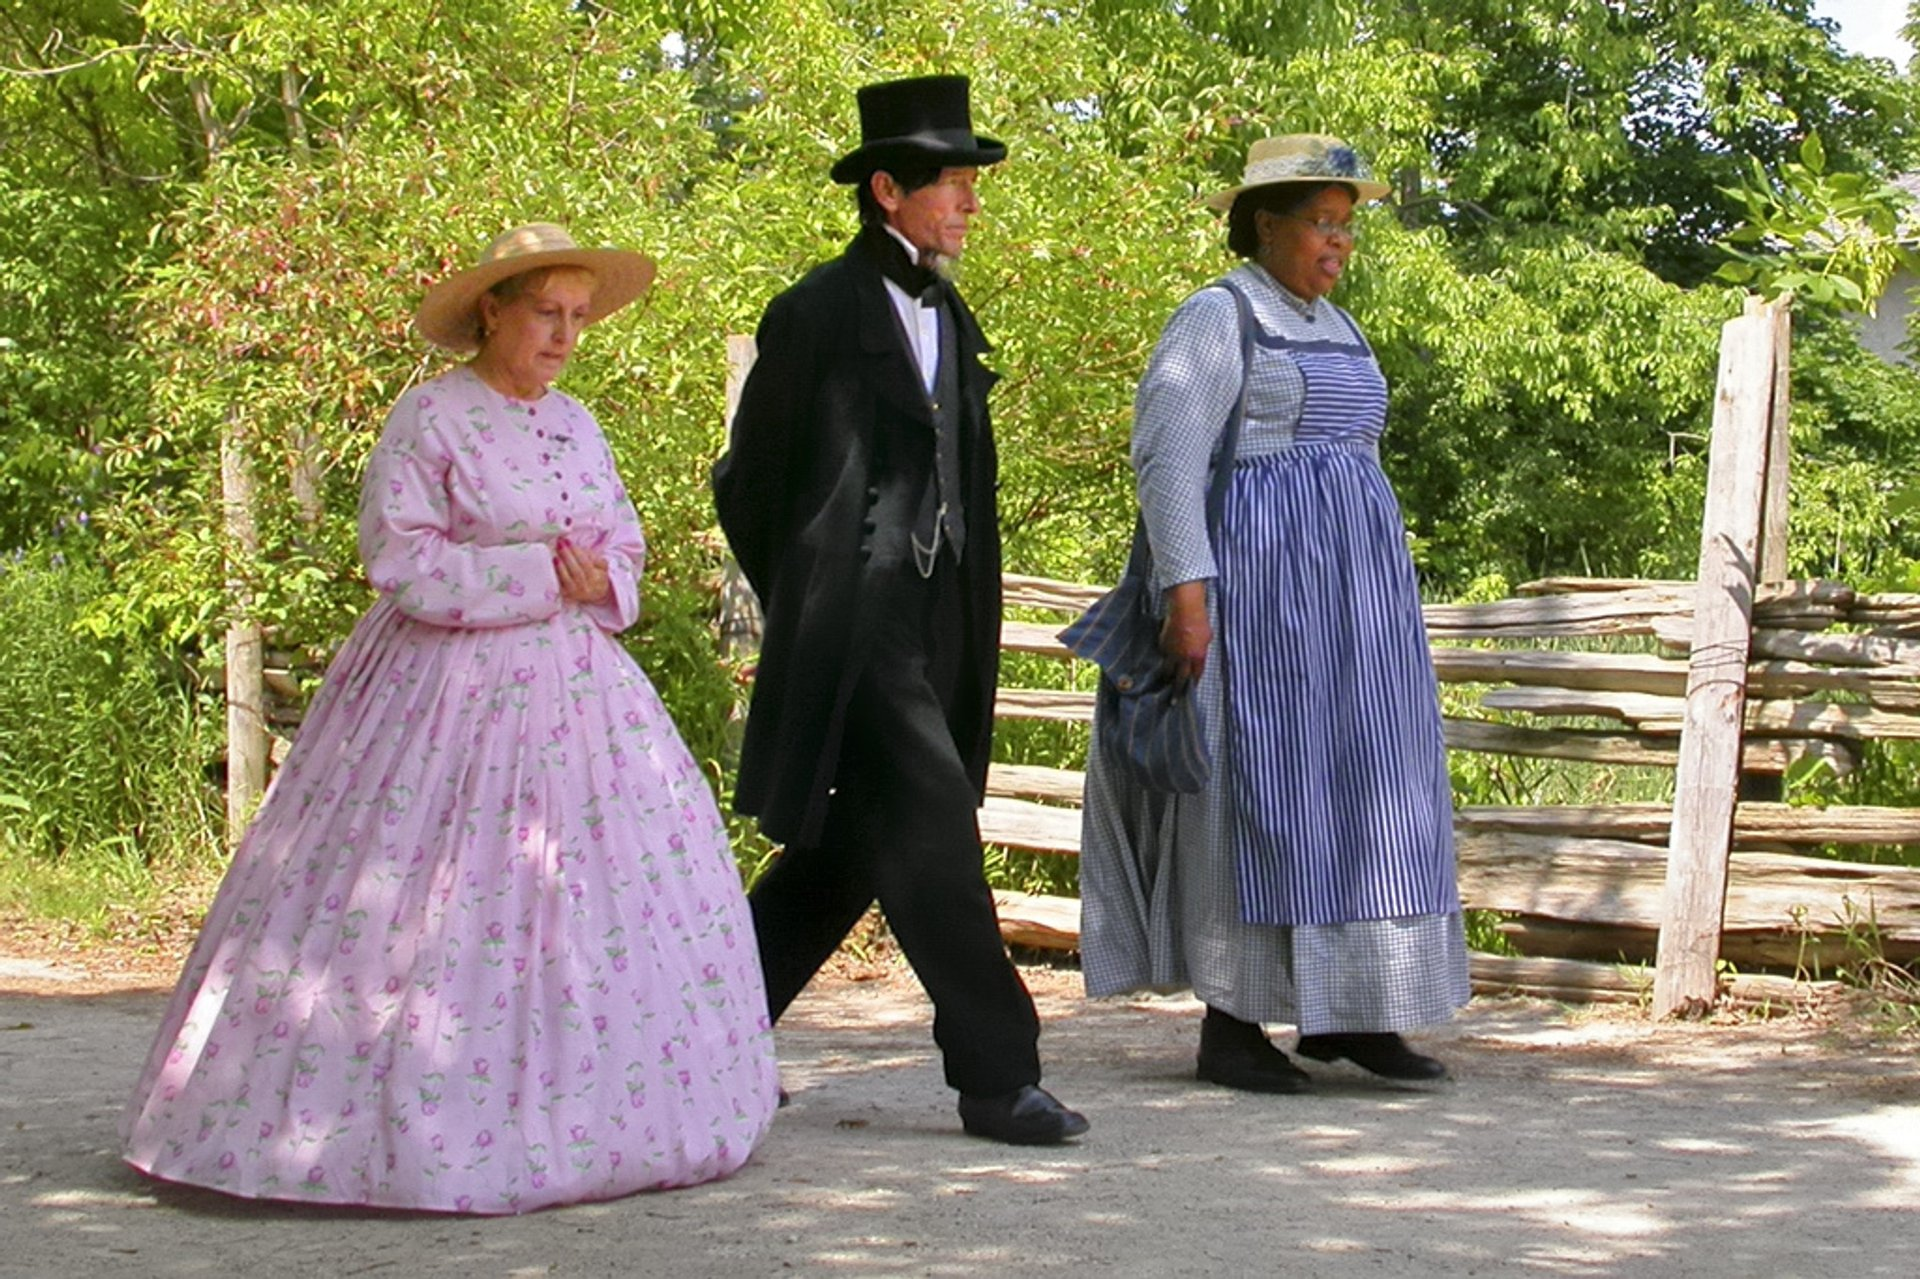 Best time to see Black Creek Pioneer Village in Toronto 2020